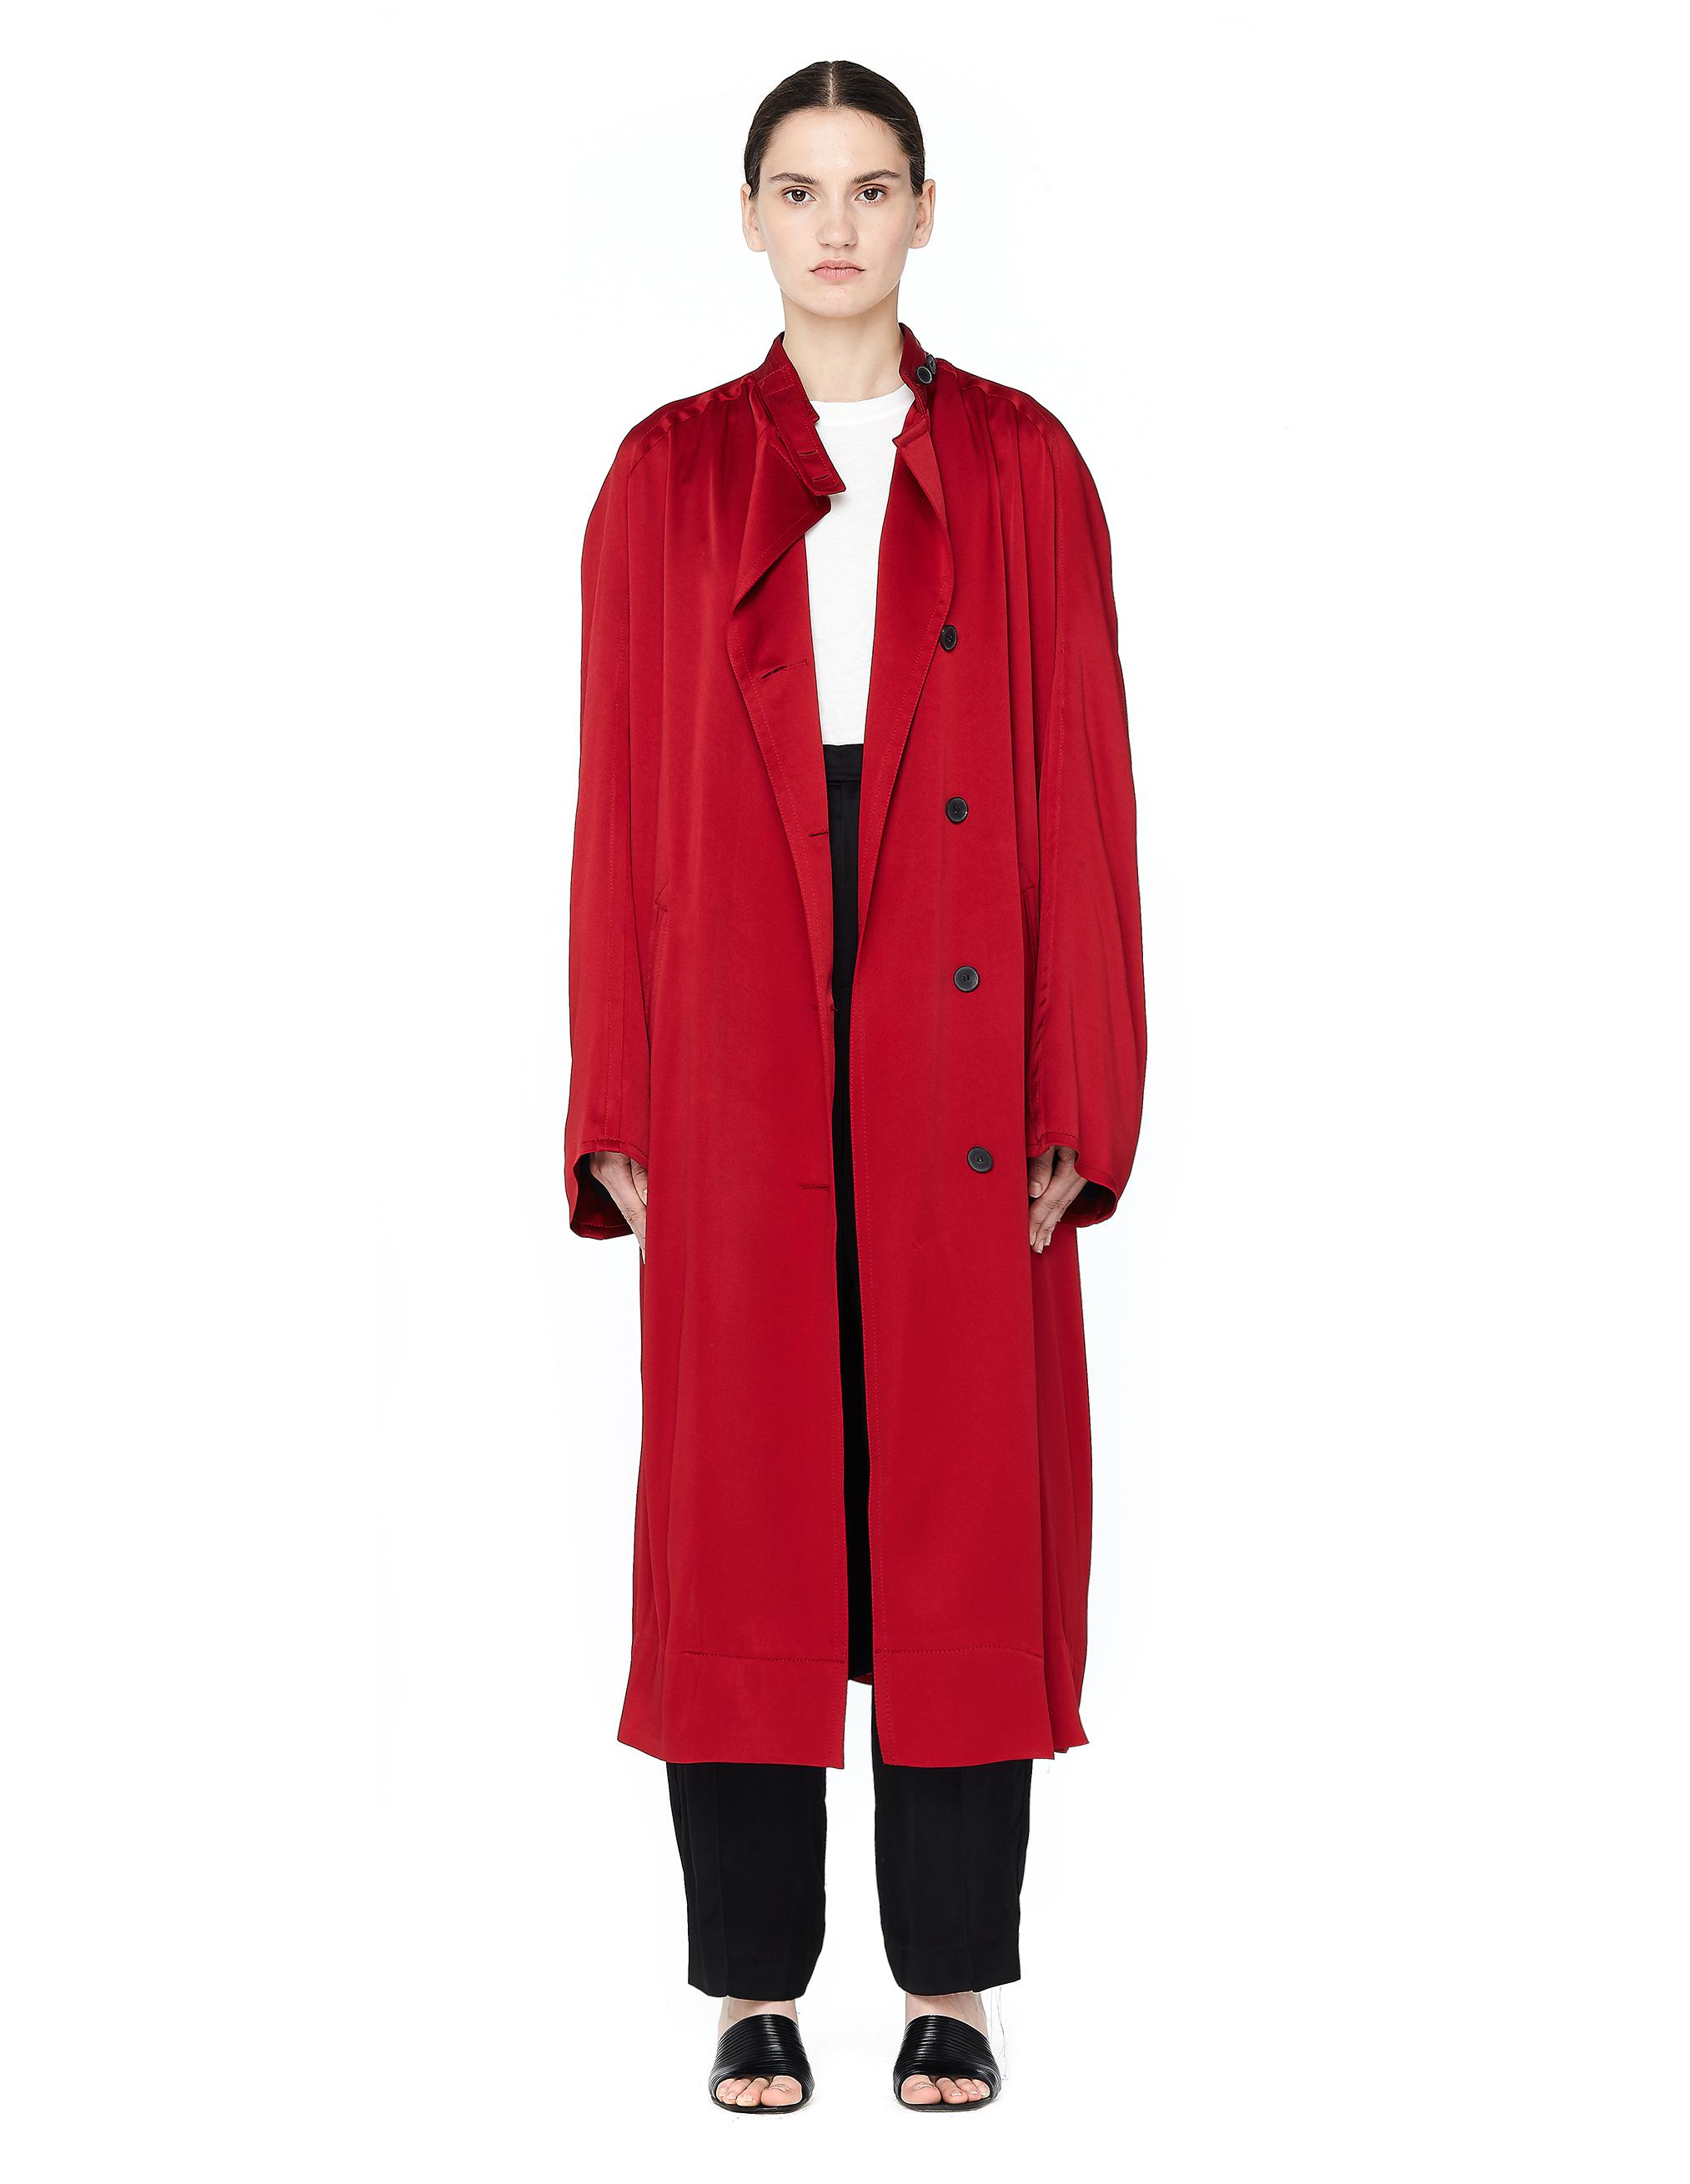 Satin Coat - Claret Haider Ackermann Clearance Exclusive Buy Cheap Huge Surprise Hard Wearing Clearance Low Shipping Footlocker Pictures Cheap Online iSYRdlk